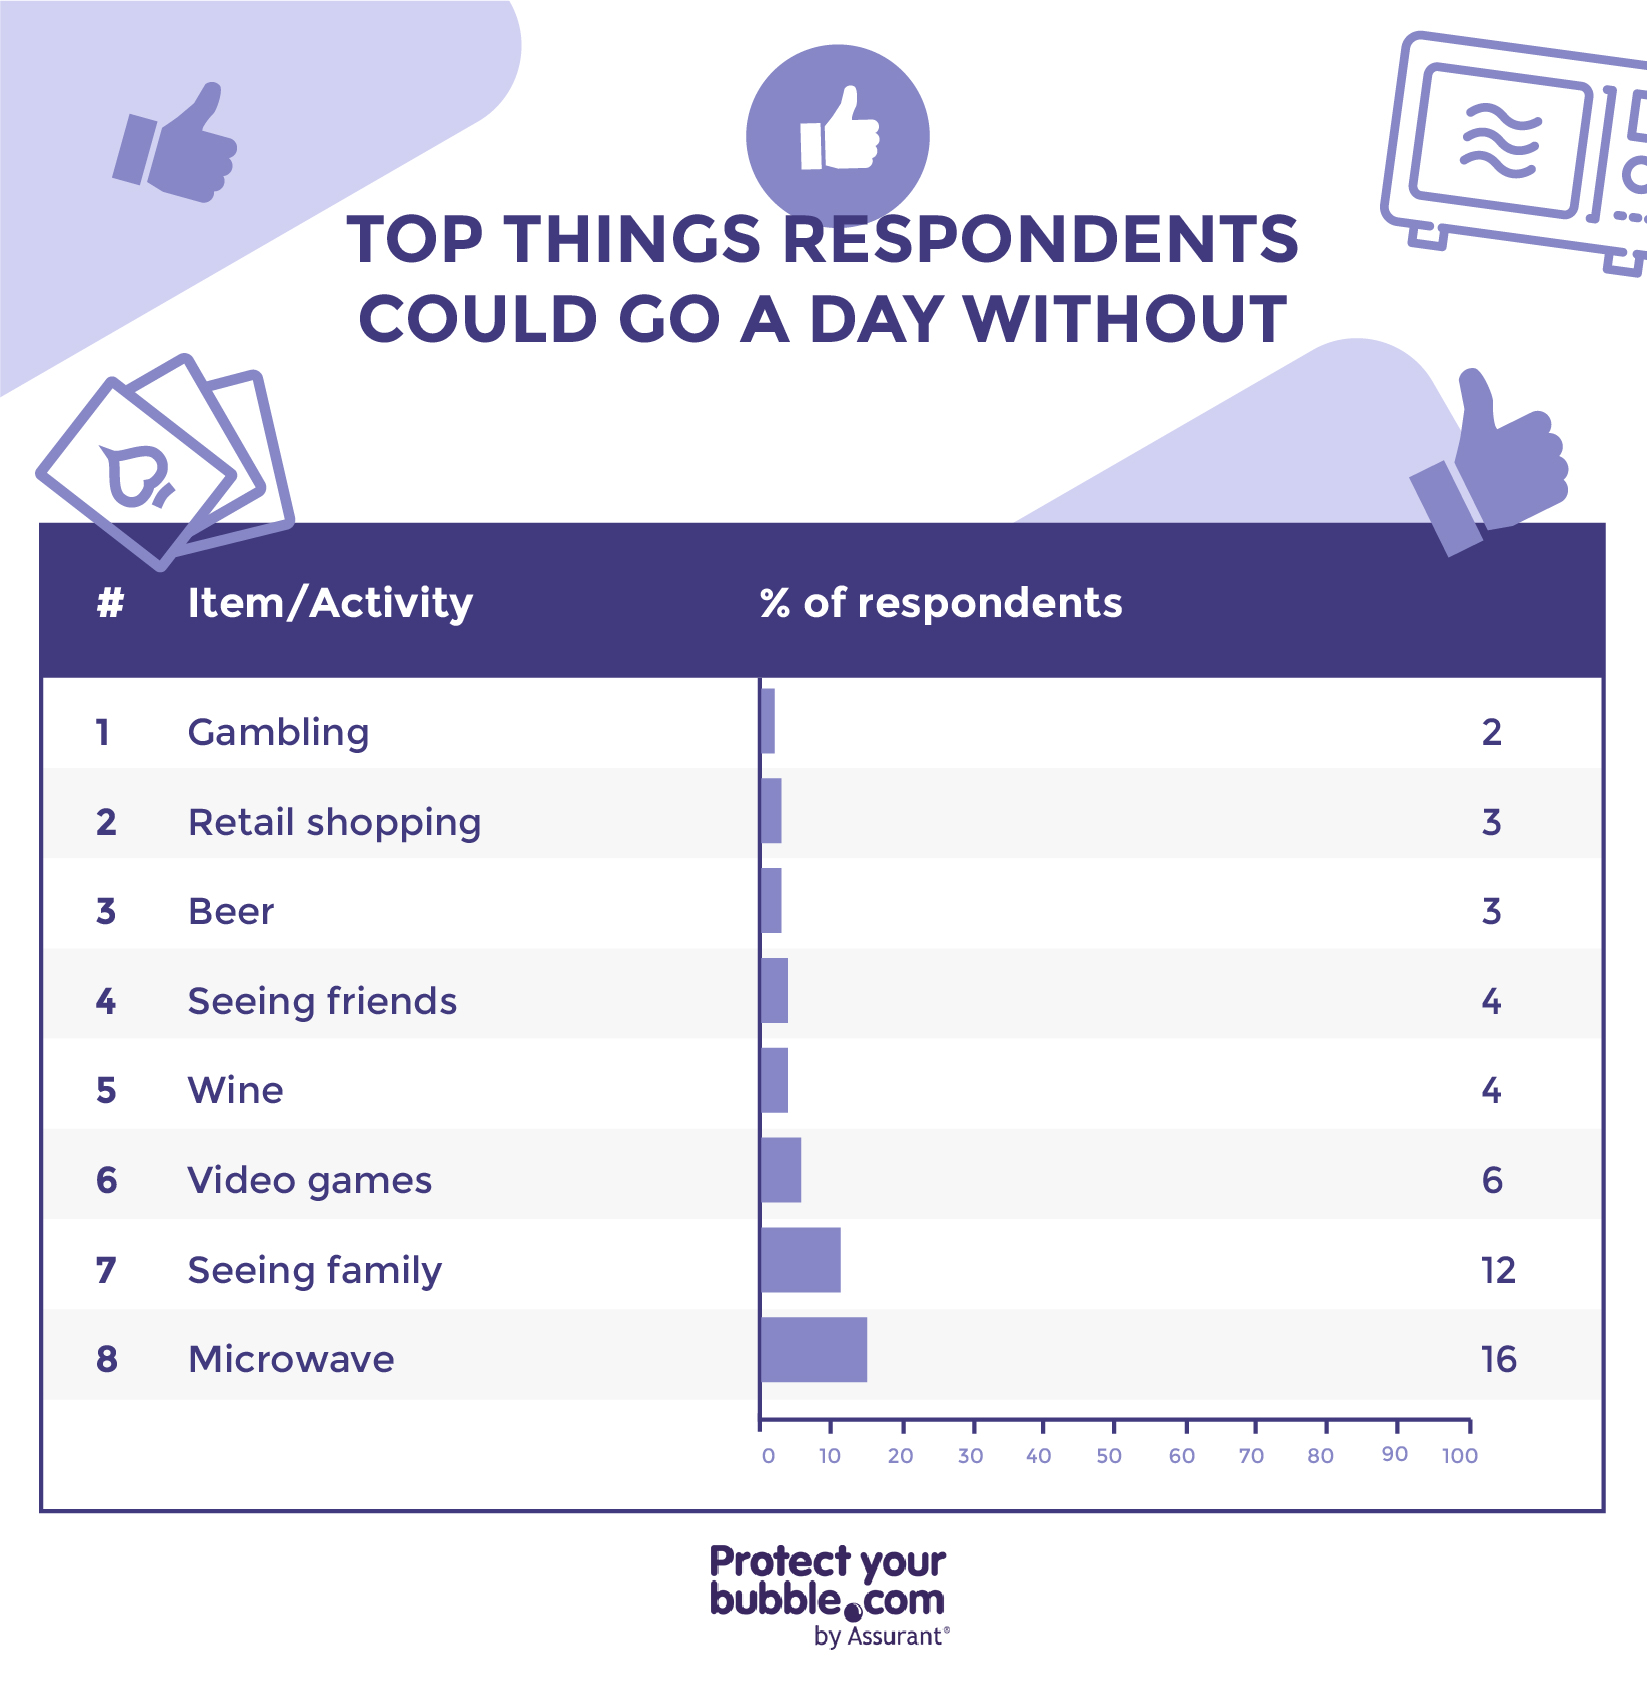 image showing things respondents could go a day without